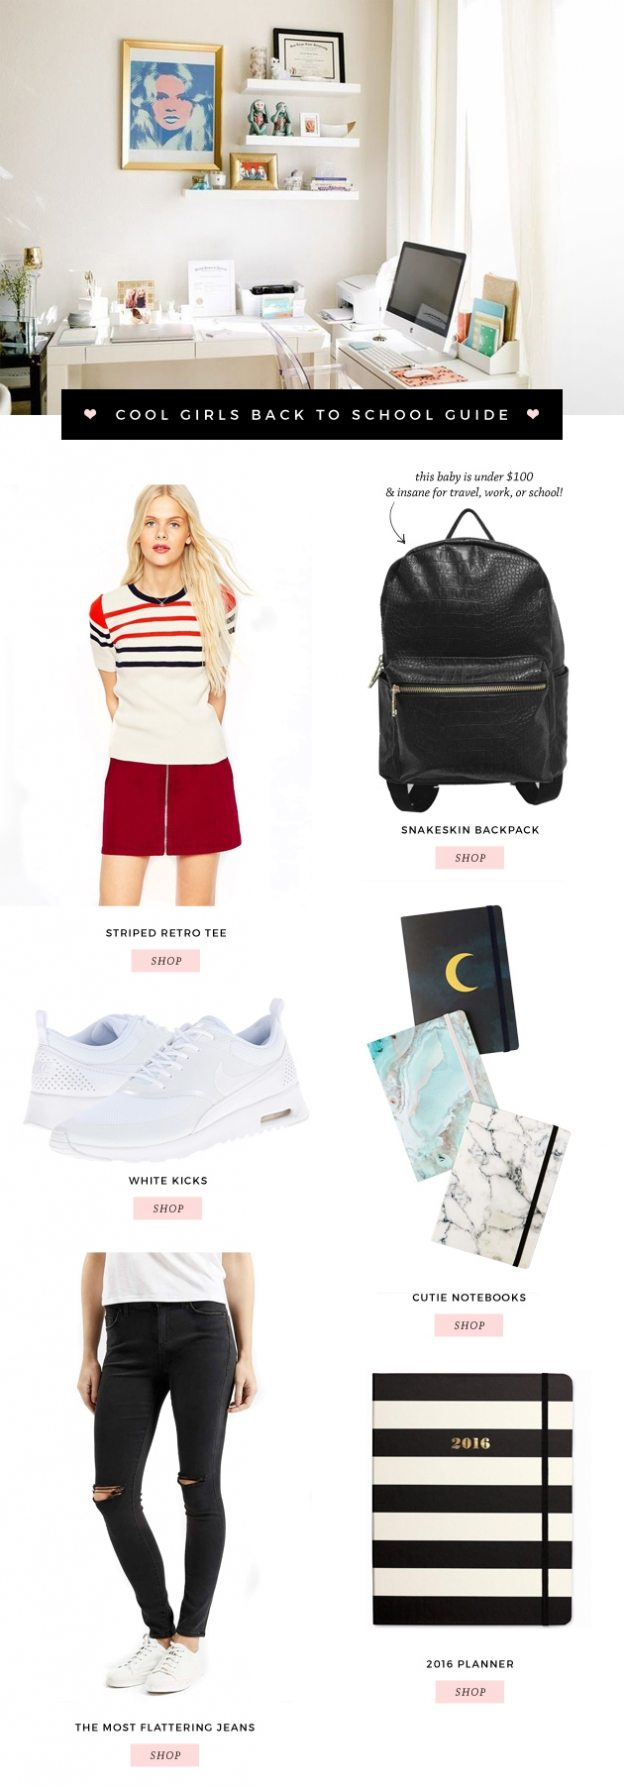 COOL GIRLS BACK TO SCHOOL GUIDE